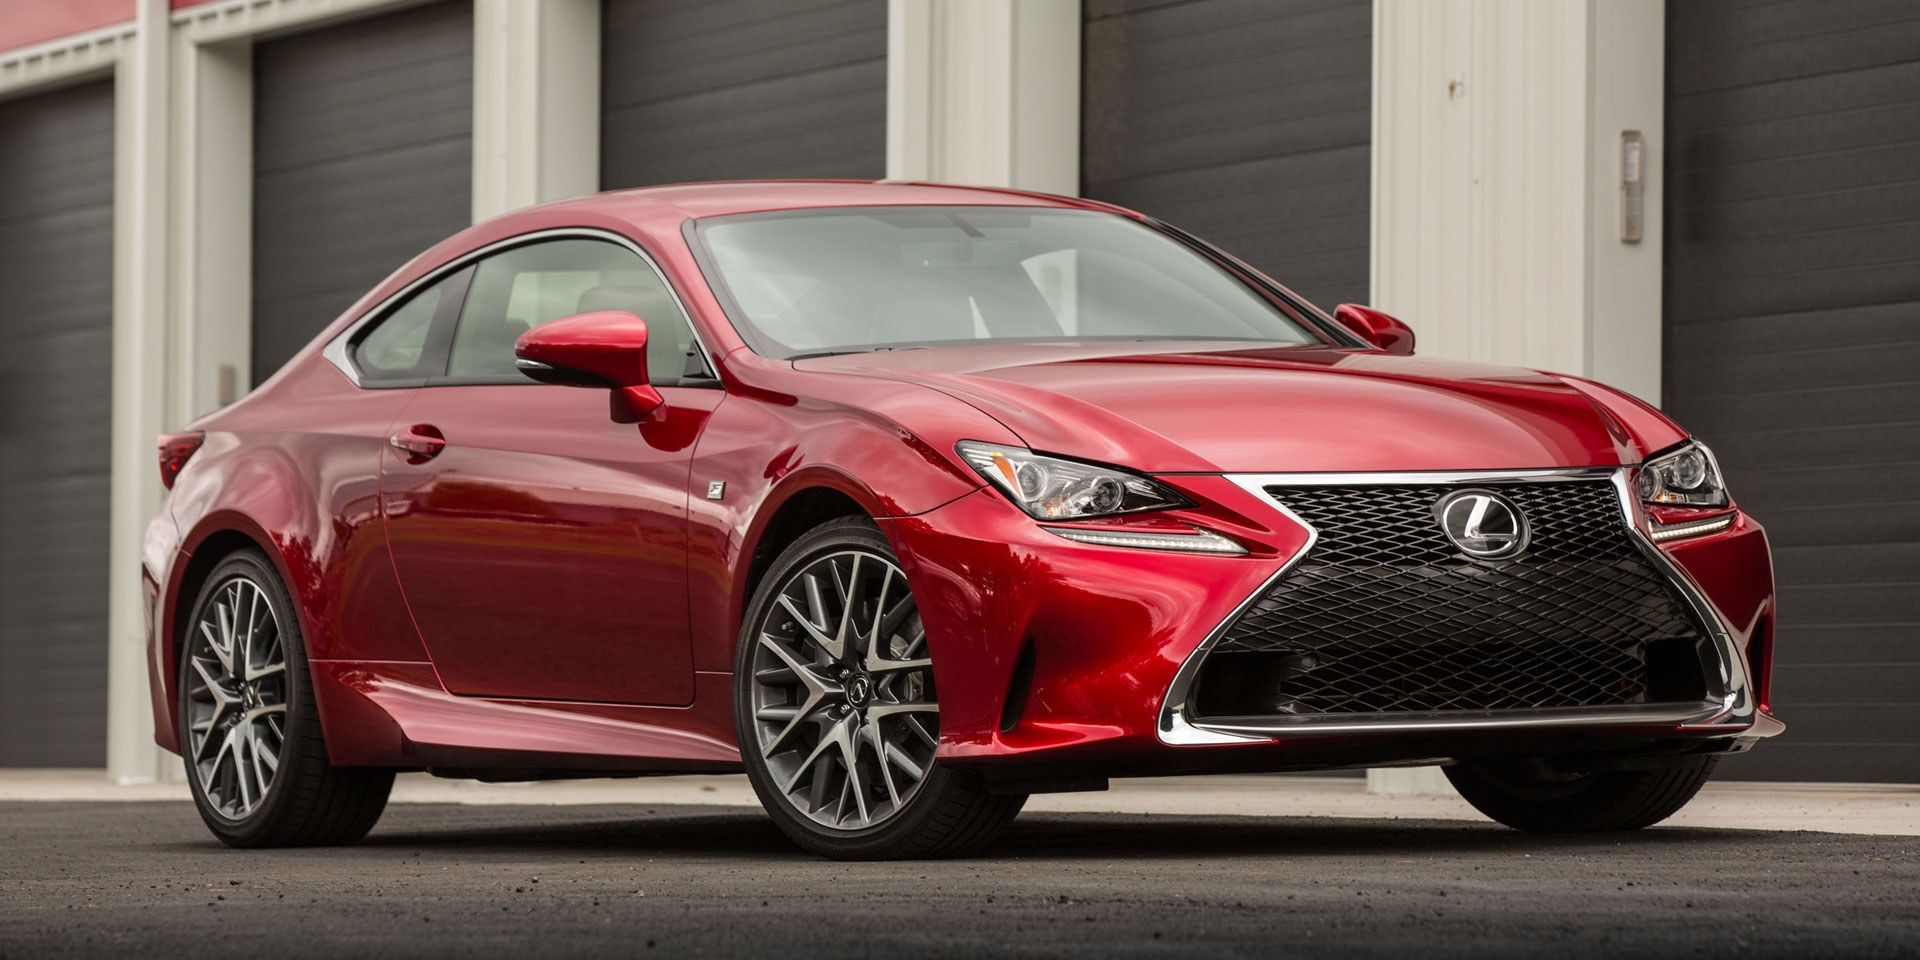 https://www.drivechicago.com/featured/img/2015-Lexus-RC-F-1.jpg